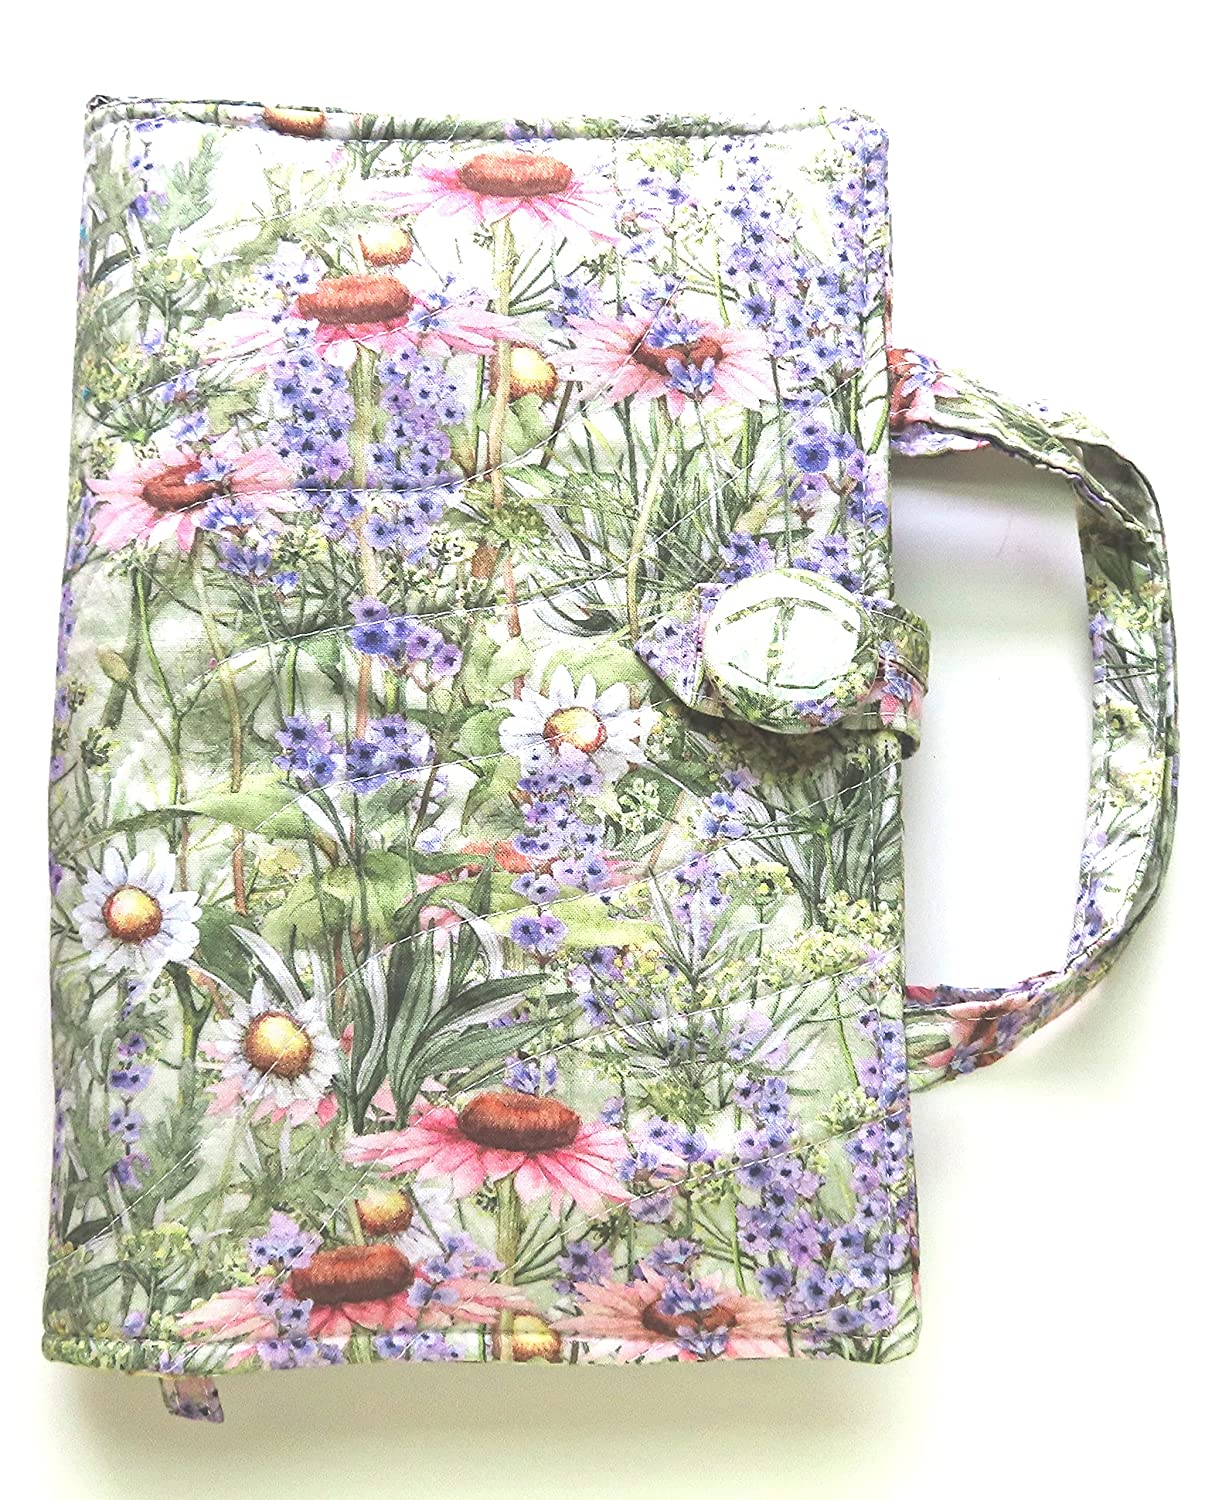 Wildflowers Large Paperback or Hardcover Cover Books Up Popular brand in Ranking TOP8 the world for Book